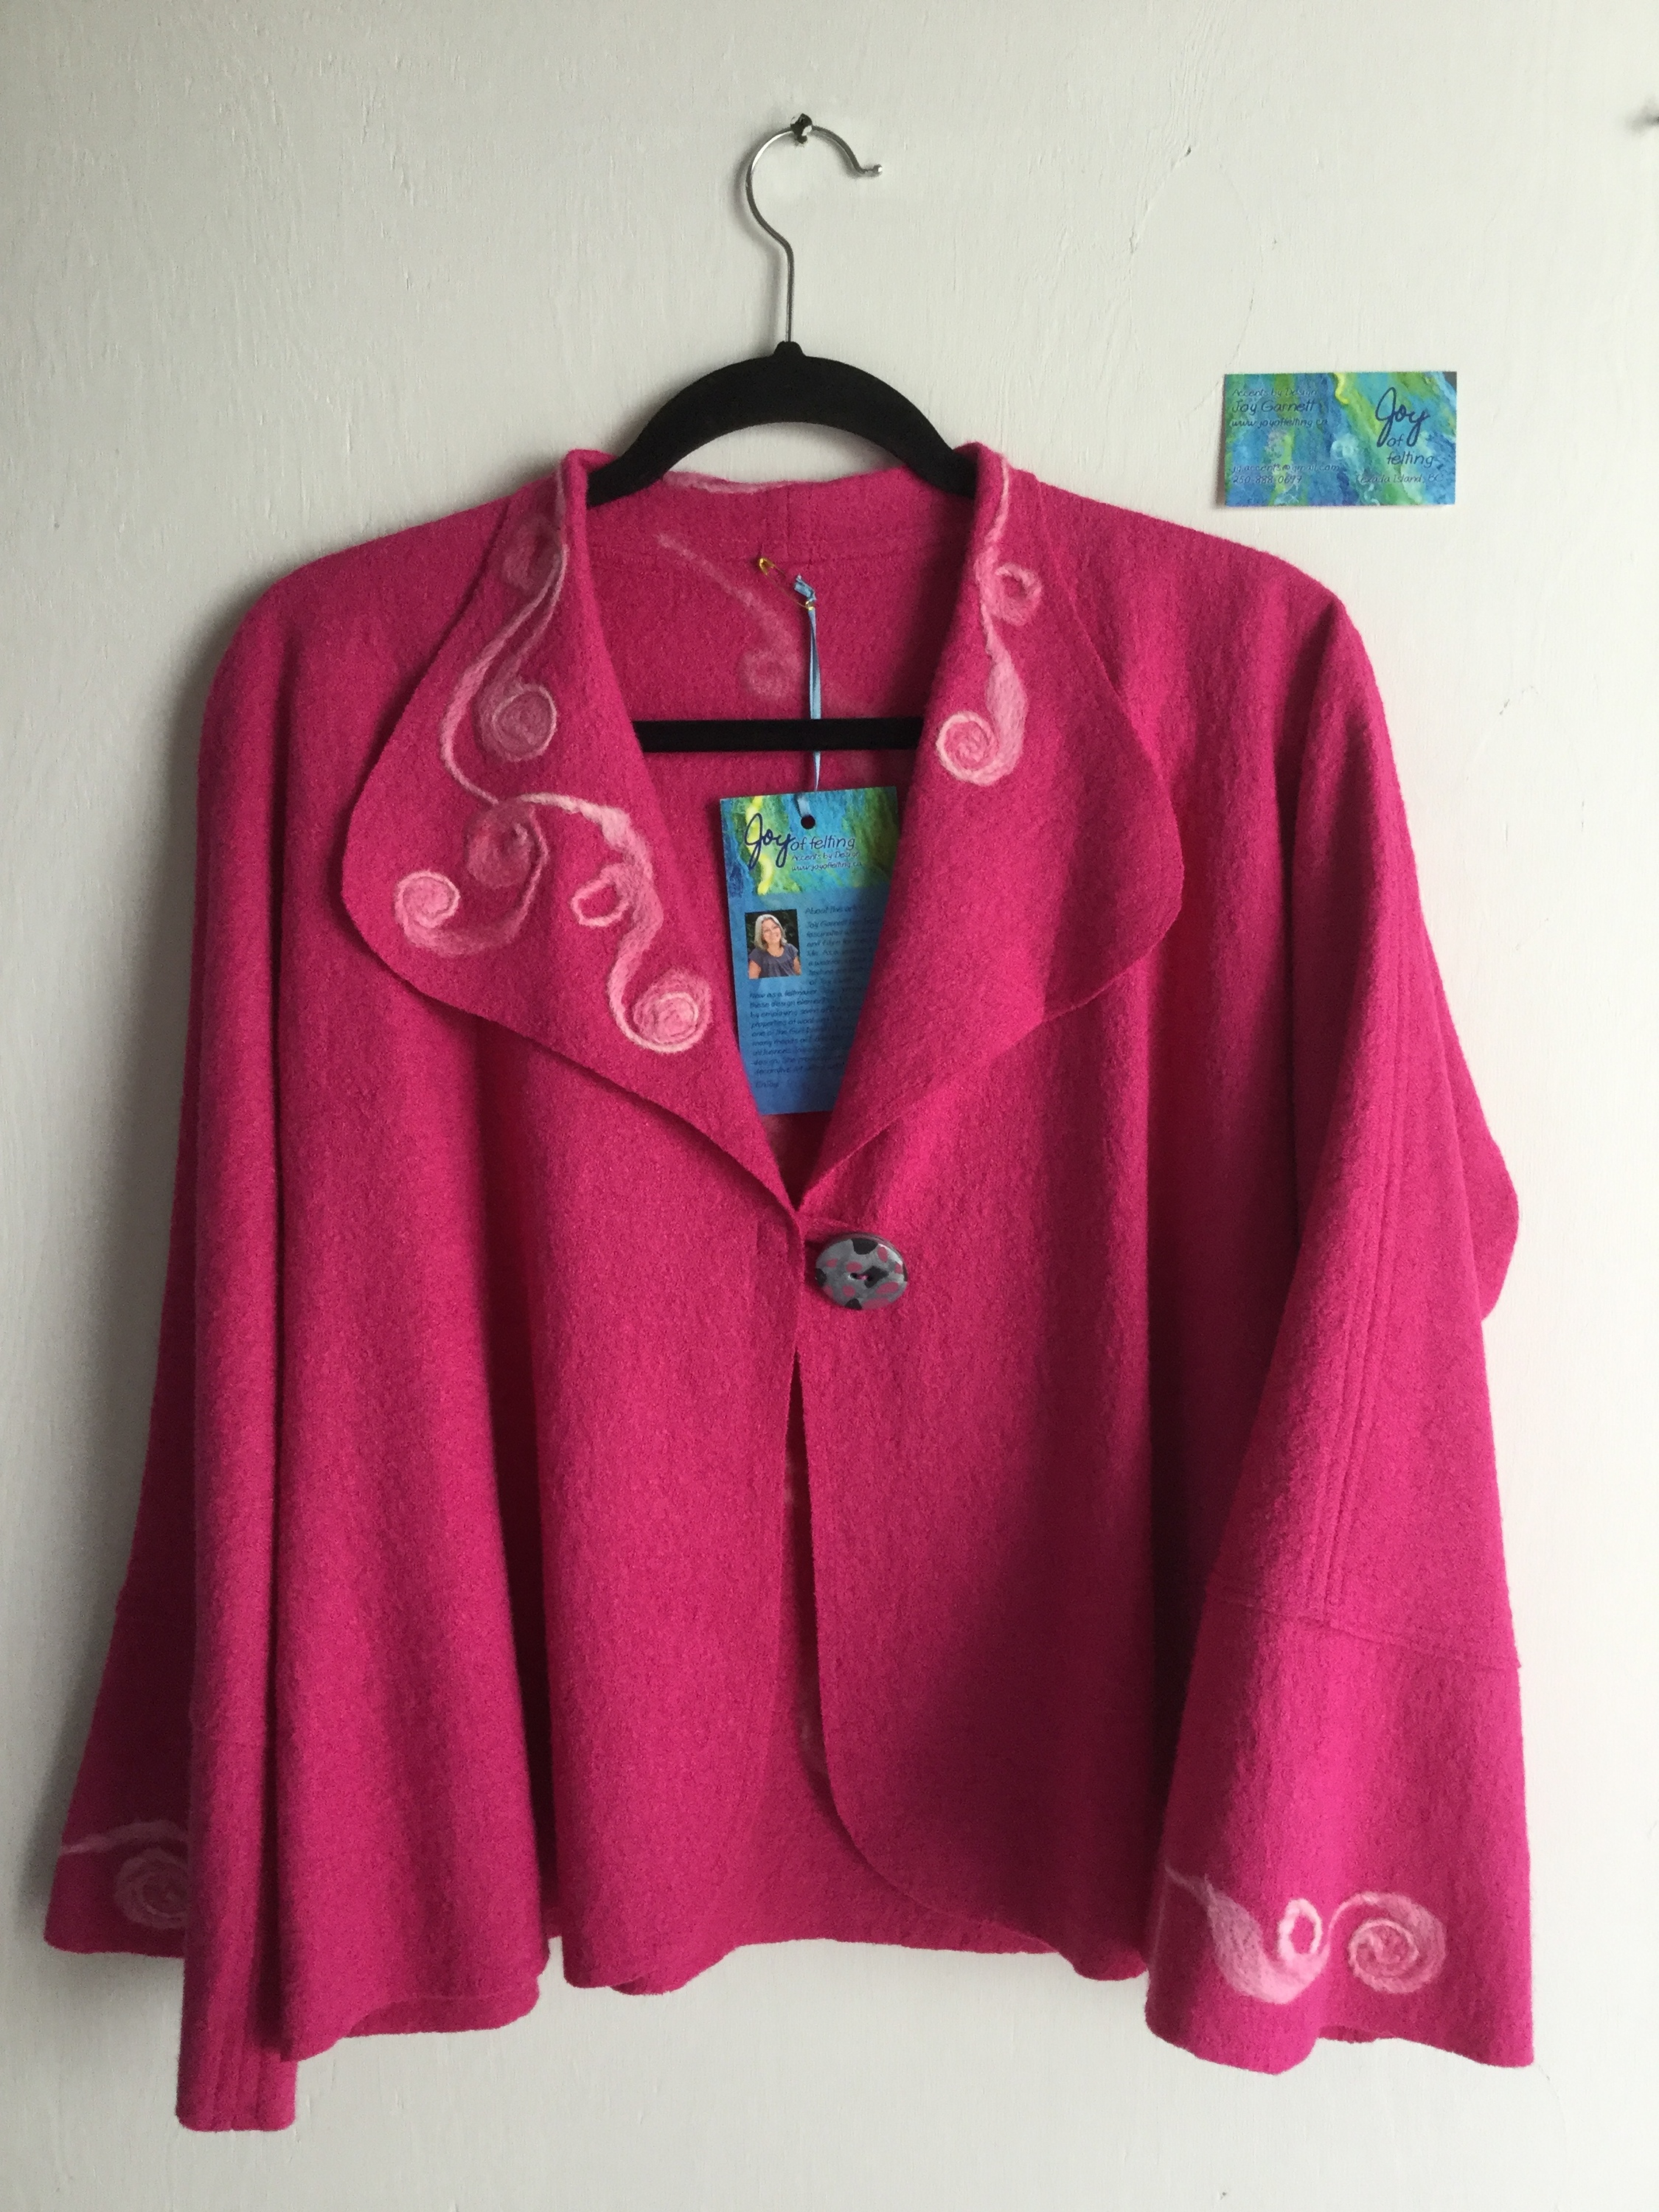 Deep rose felt art jacket front elpfnh